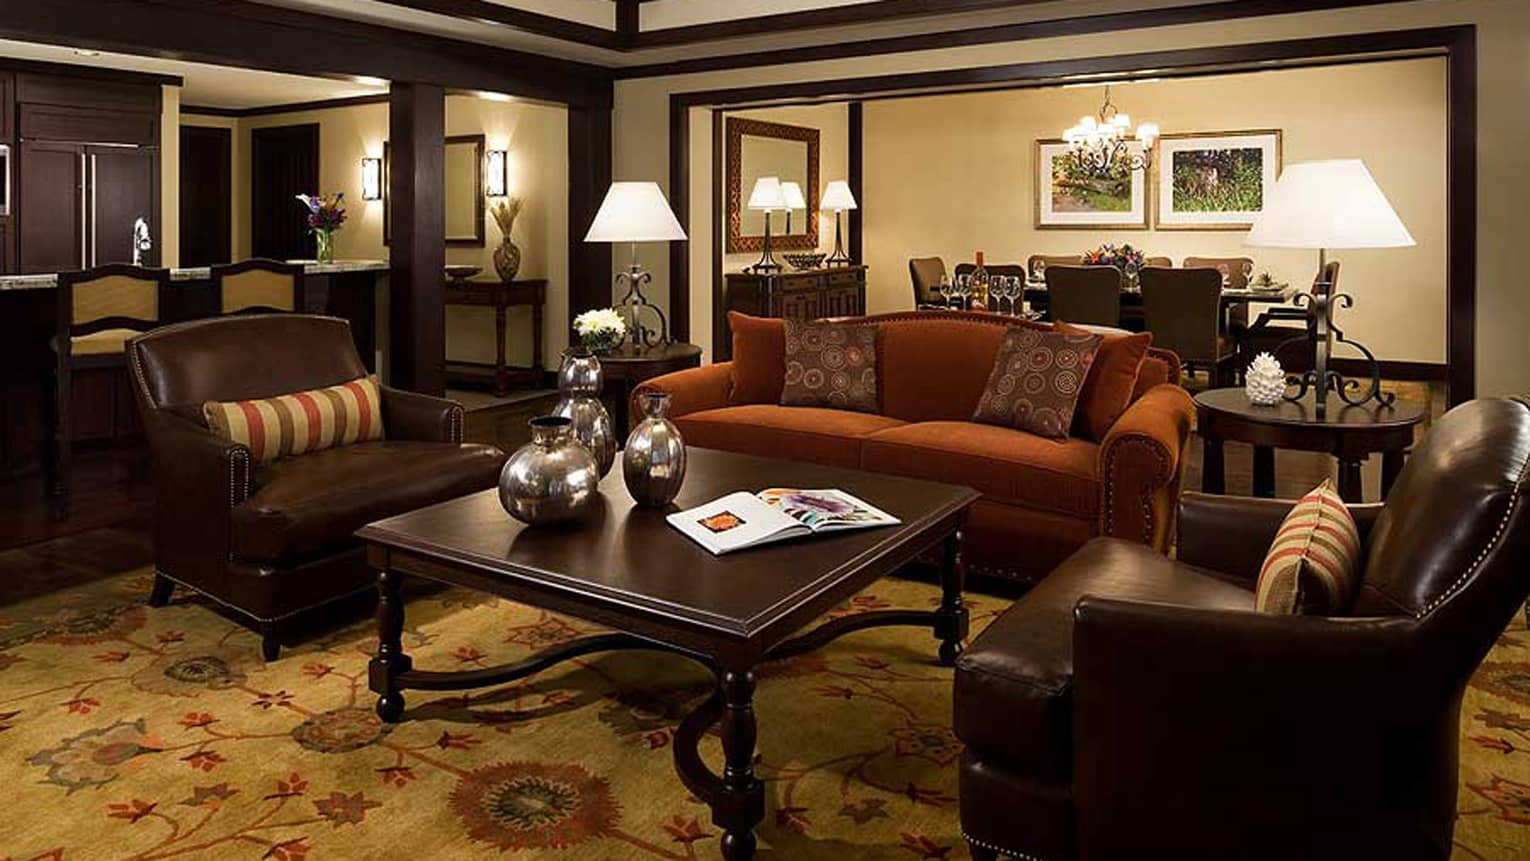 Two-bedroom with den residence suite living space with dark wood decor, private dining table, kitchenette